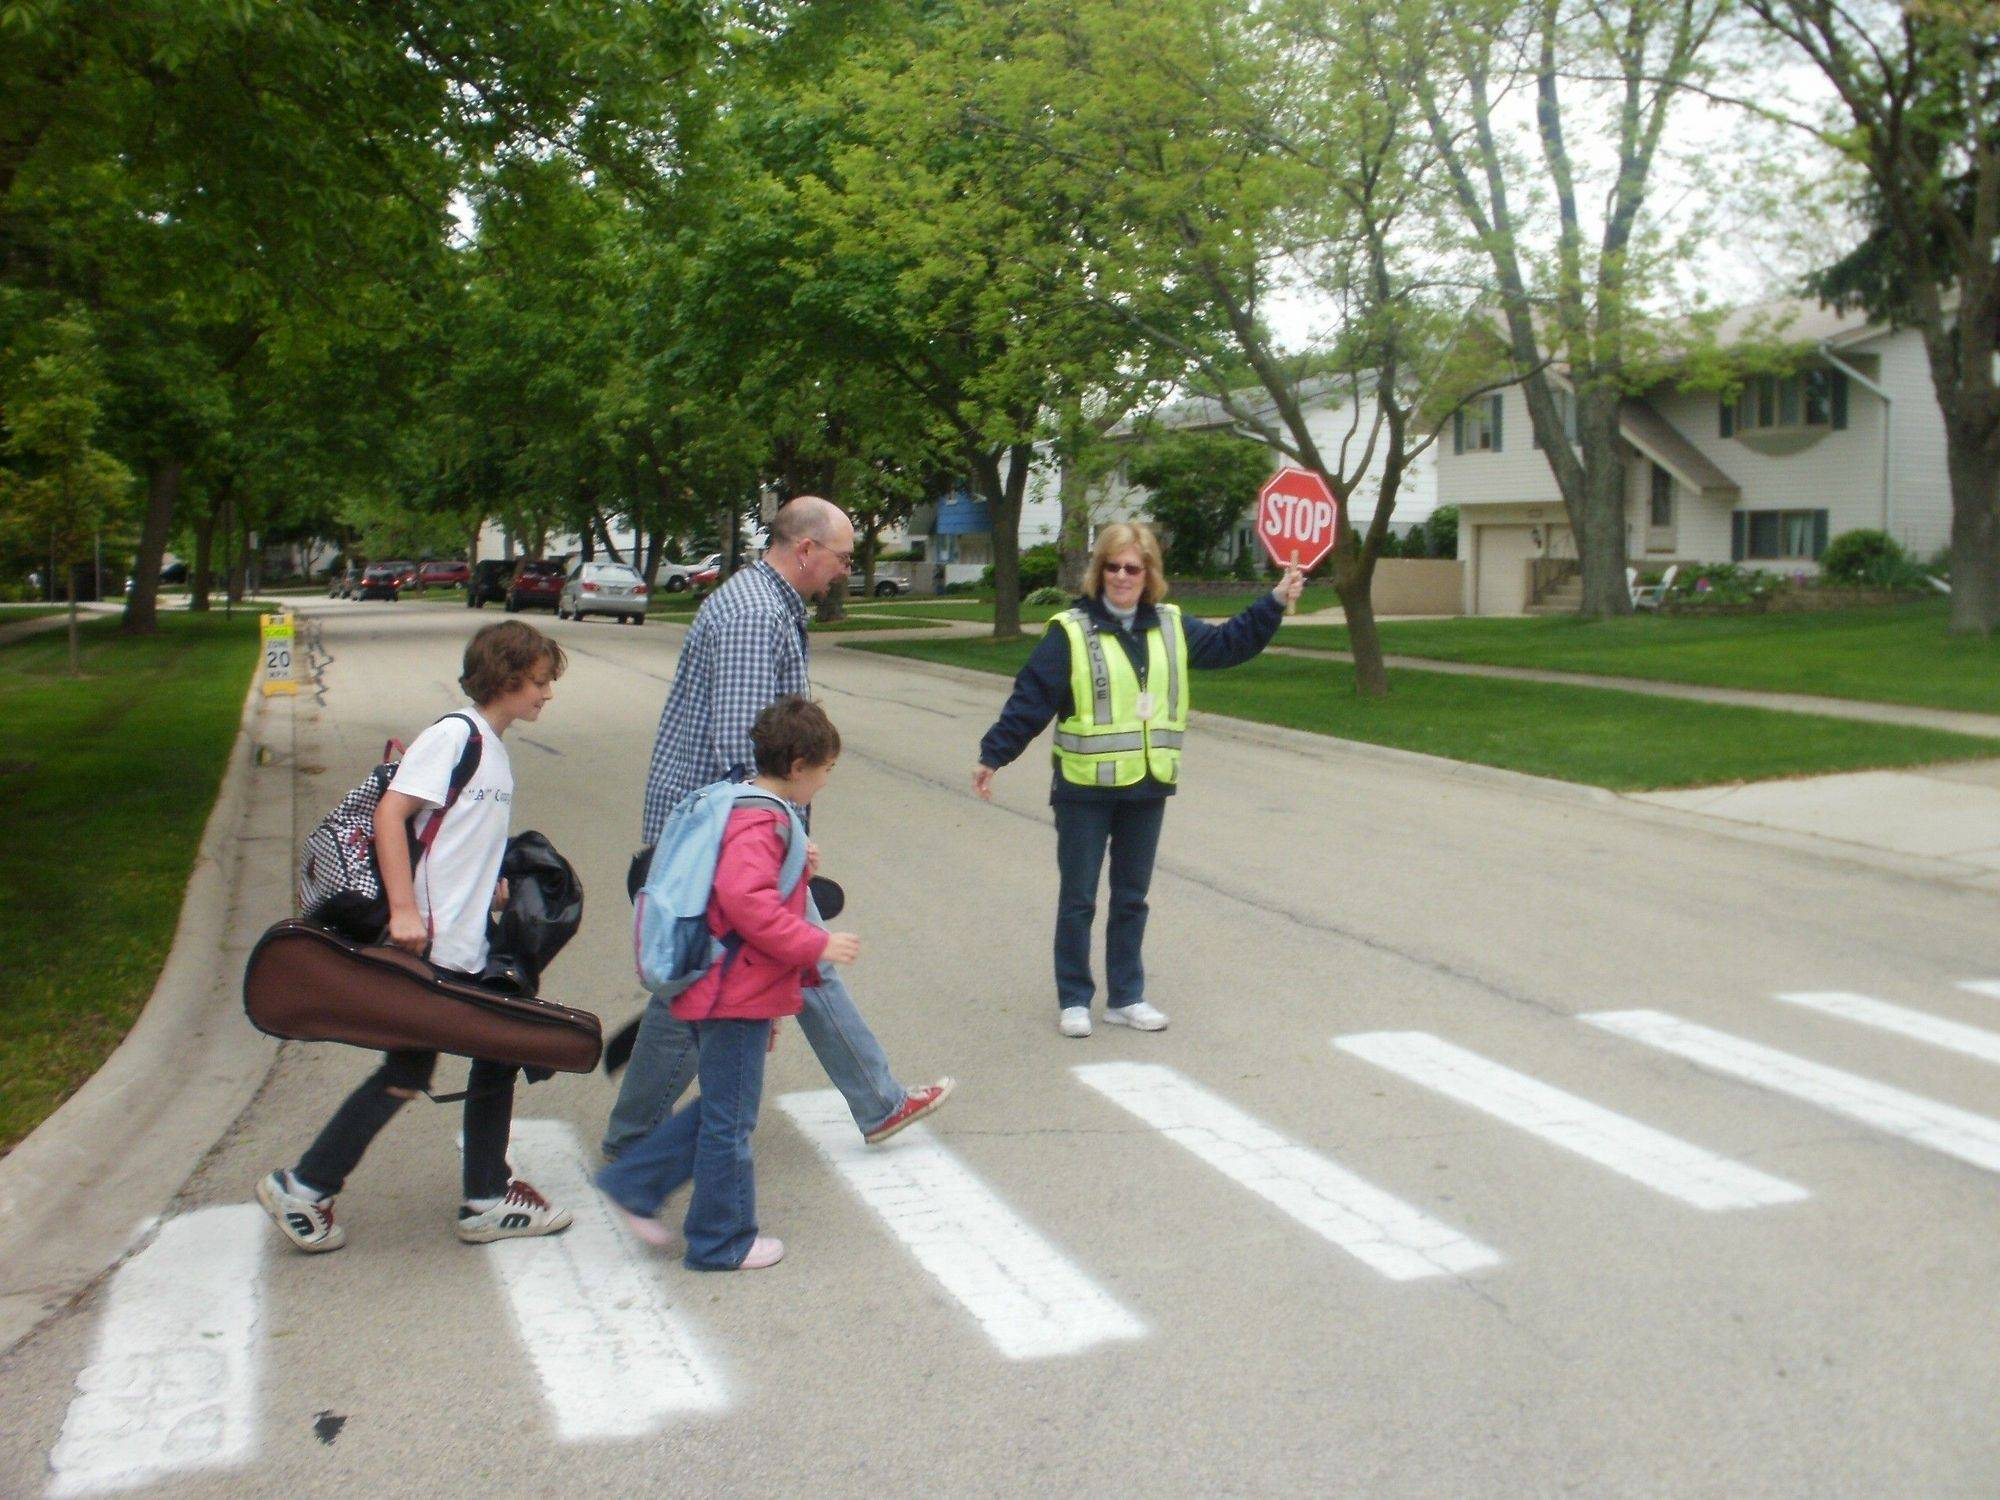 Crossing guard Jan Stiefvater lends assistance and a smile to Hayden and Savannah Sherrell, walking home from Dooley Elementary School in Schaumburg with their dad, James Sherrell.